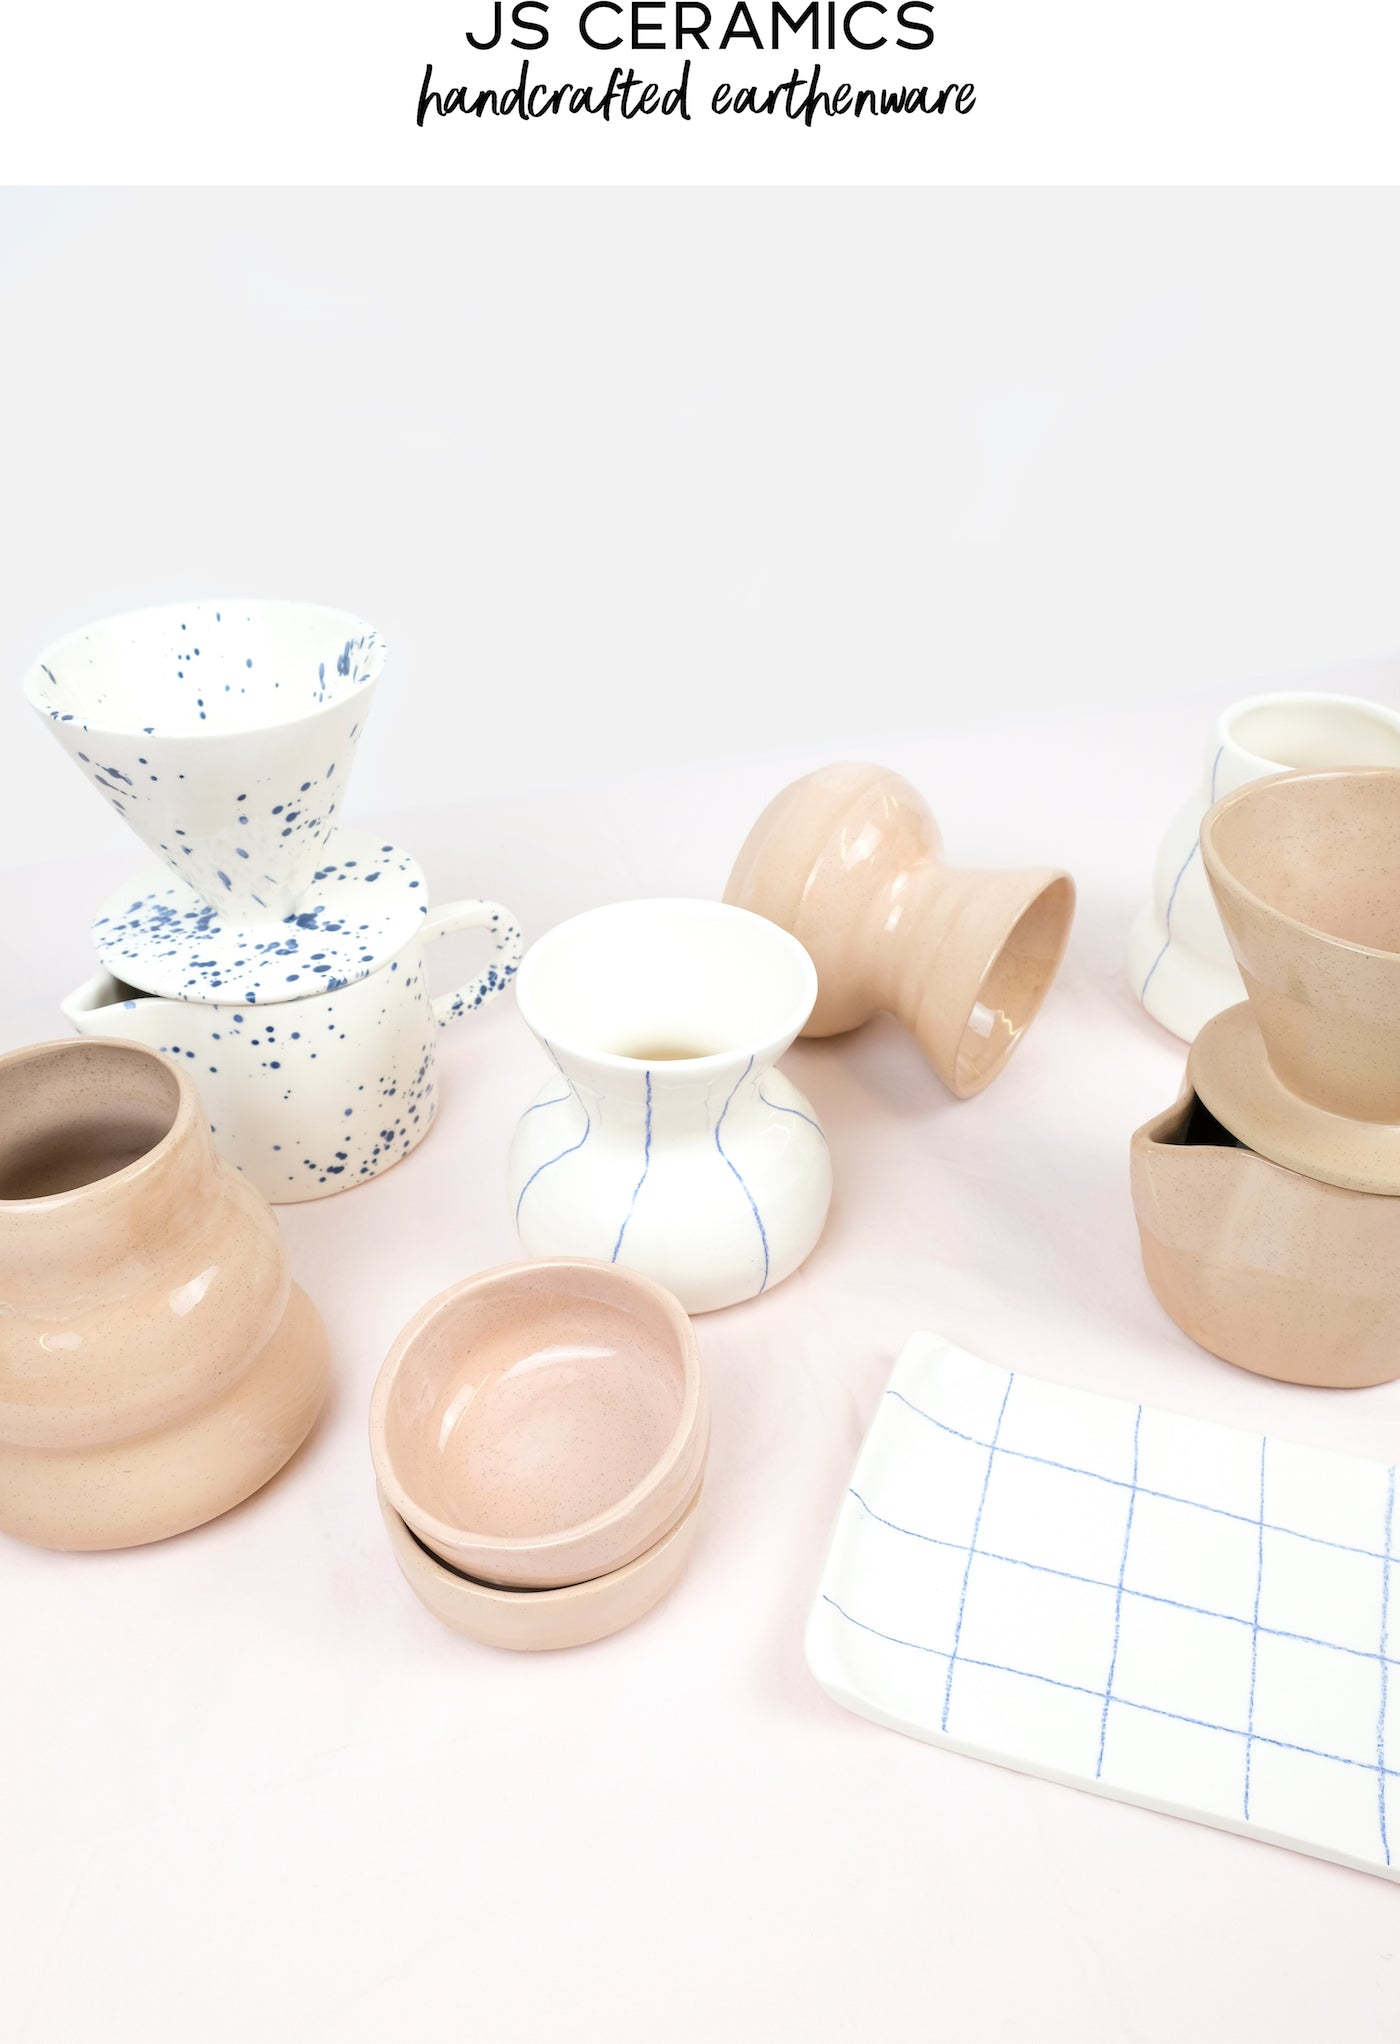 JS Ceramics - Hand Crafted Earthenware